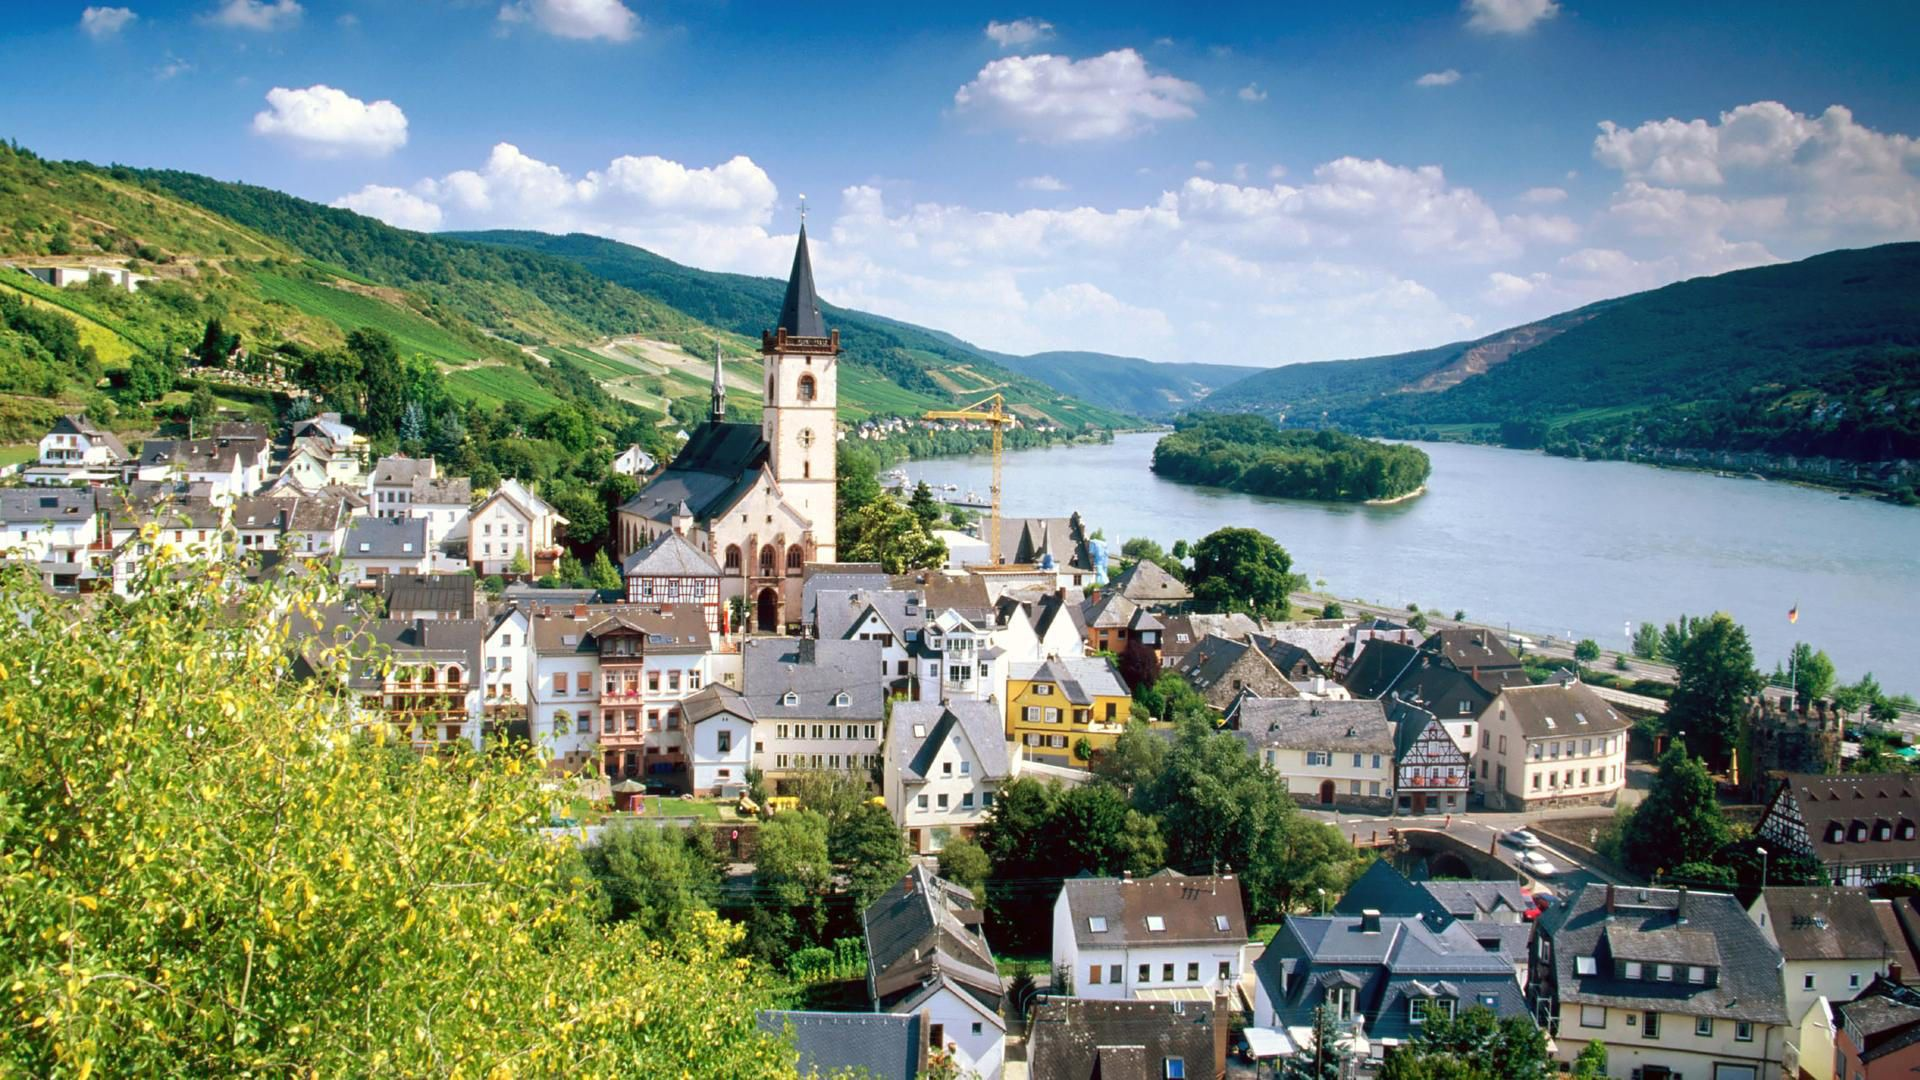 hd wallpaper lorch village on the rhine river germany Countries 1920x1080